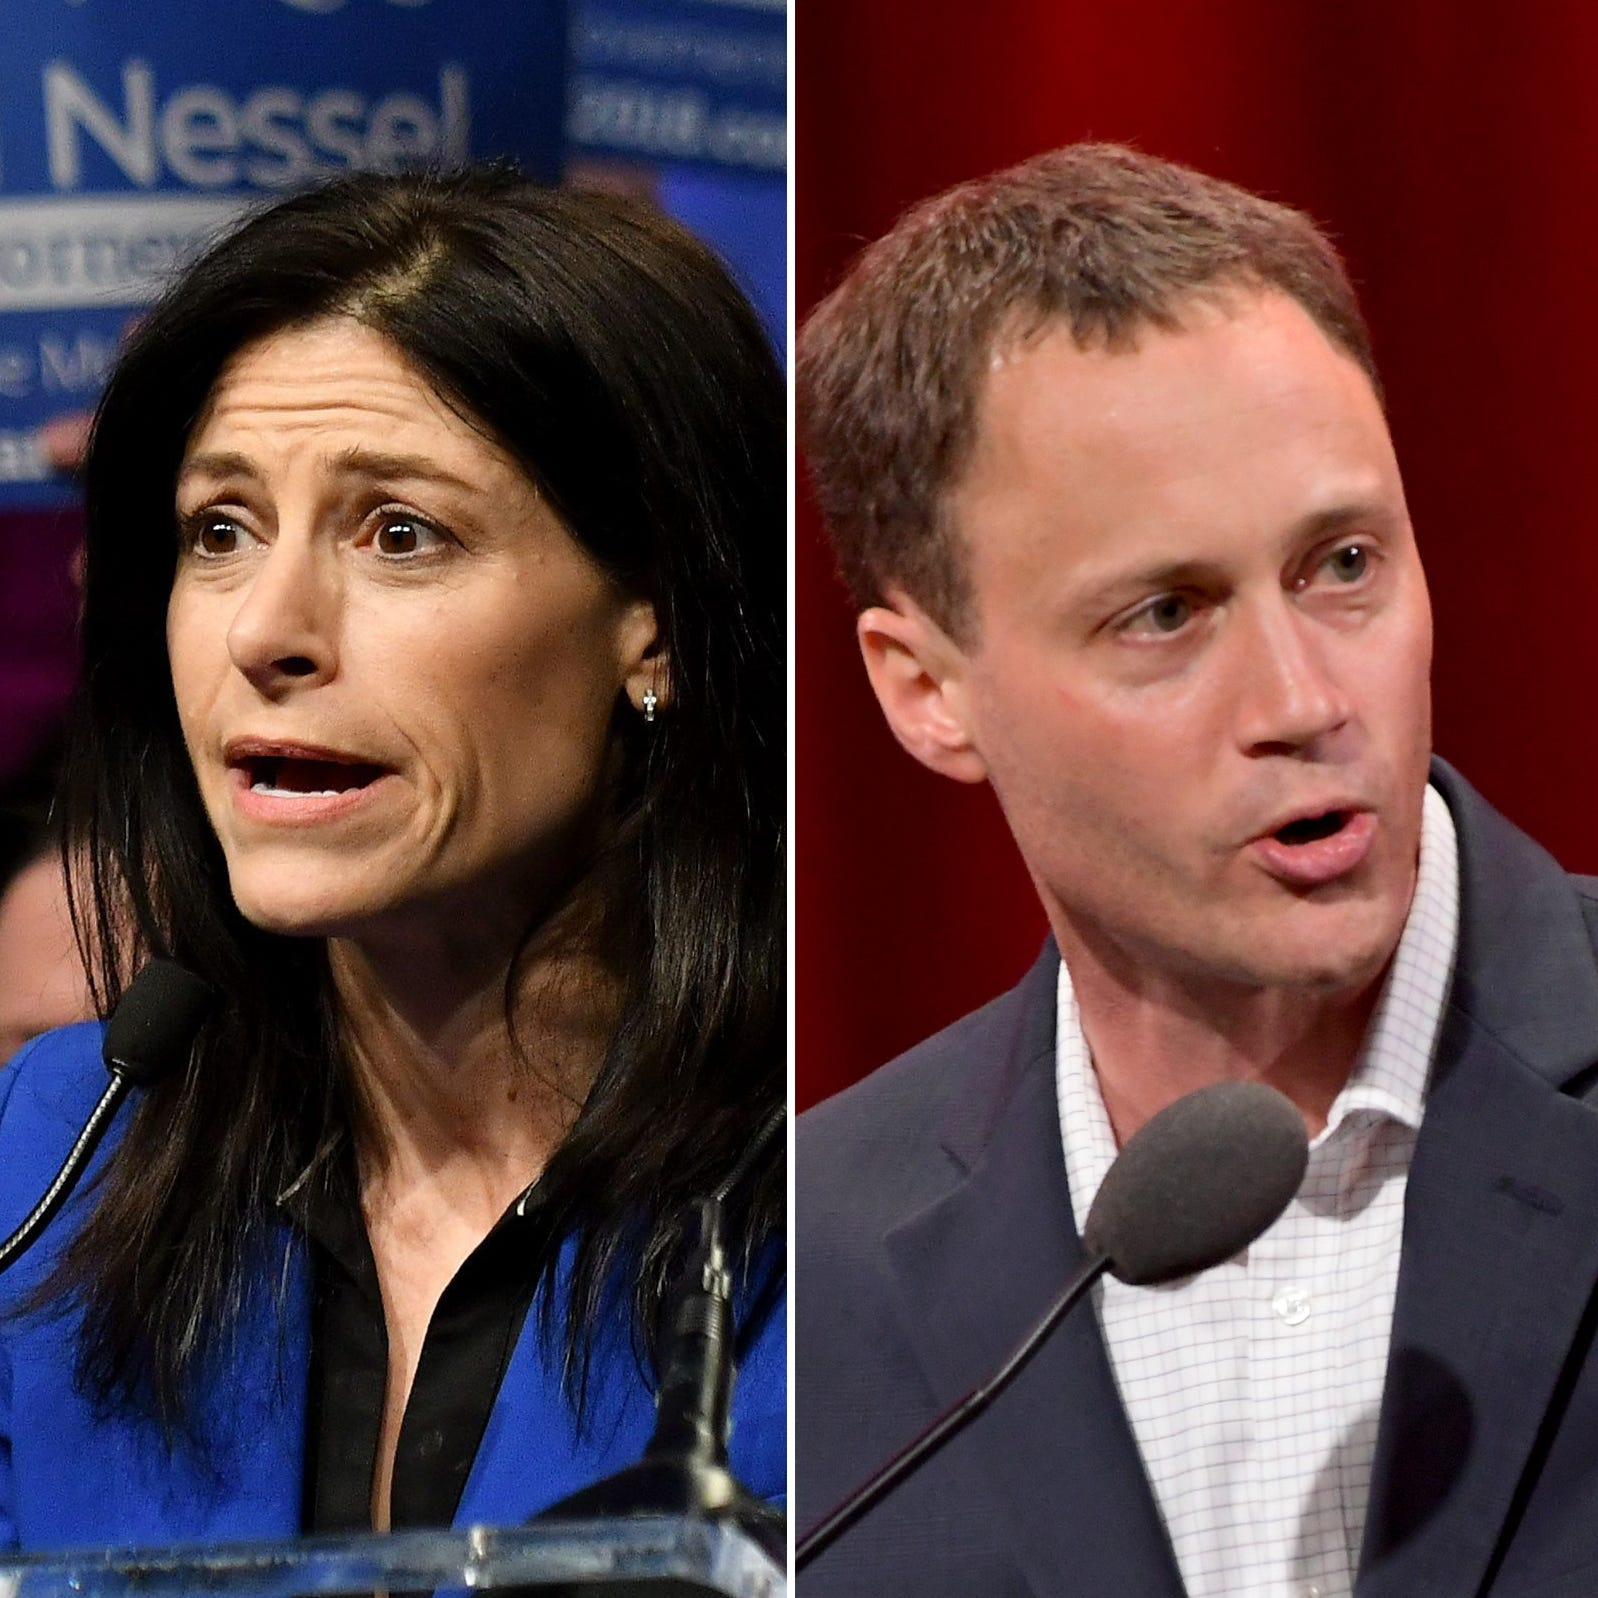 Volatile Michigan attorney general's race shows gulf between Leonard, Nessel